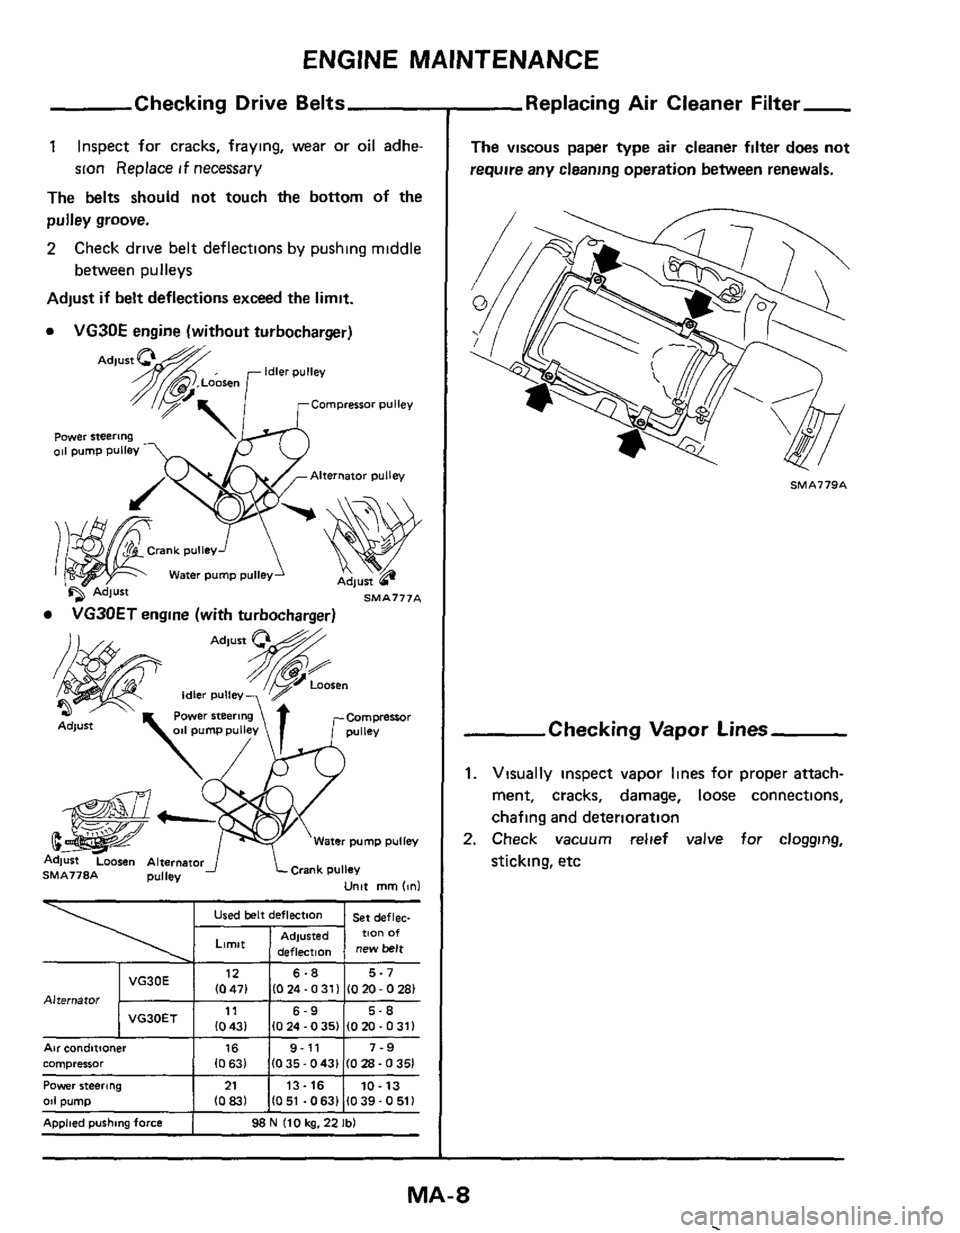 NISSAN 300ZX 1984 Z31 Maintenance Workshop Manual, Page 8